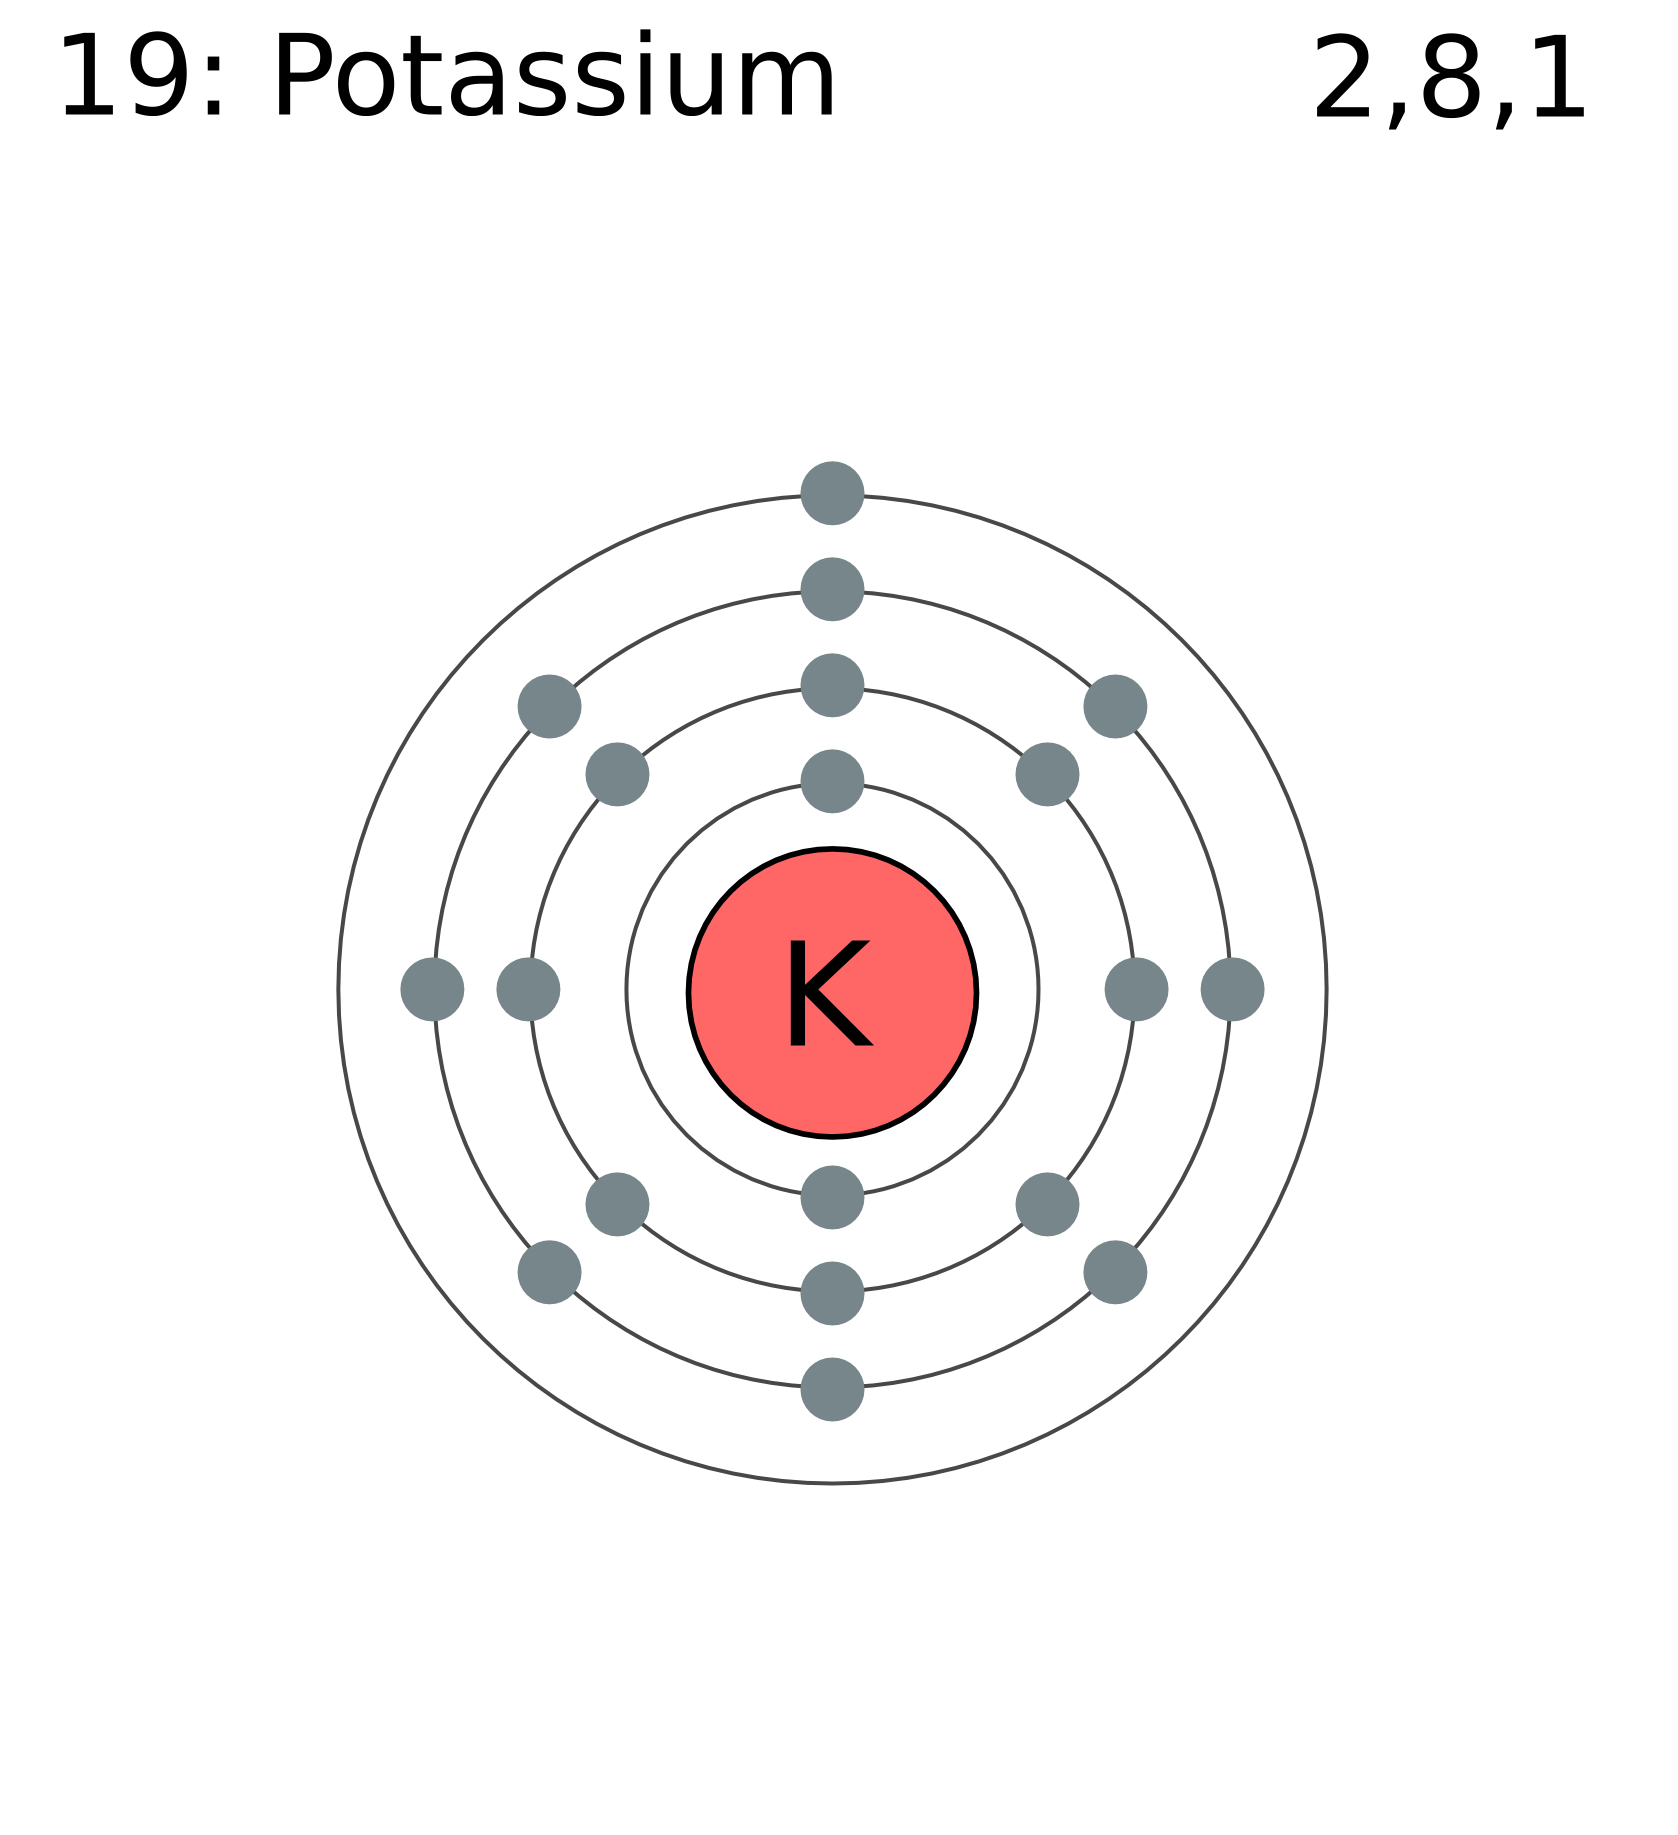 potassium is the third most abundant mineral in human body it is the chemical element with the symbol k atomic number 19 potassium is a very important  [ 1678 x 1835 Pixel ]